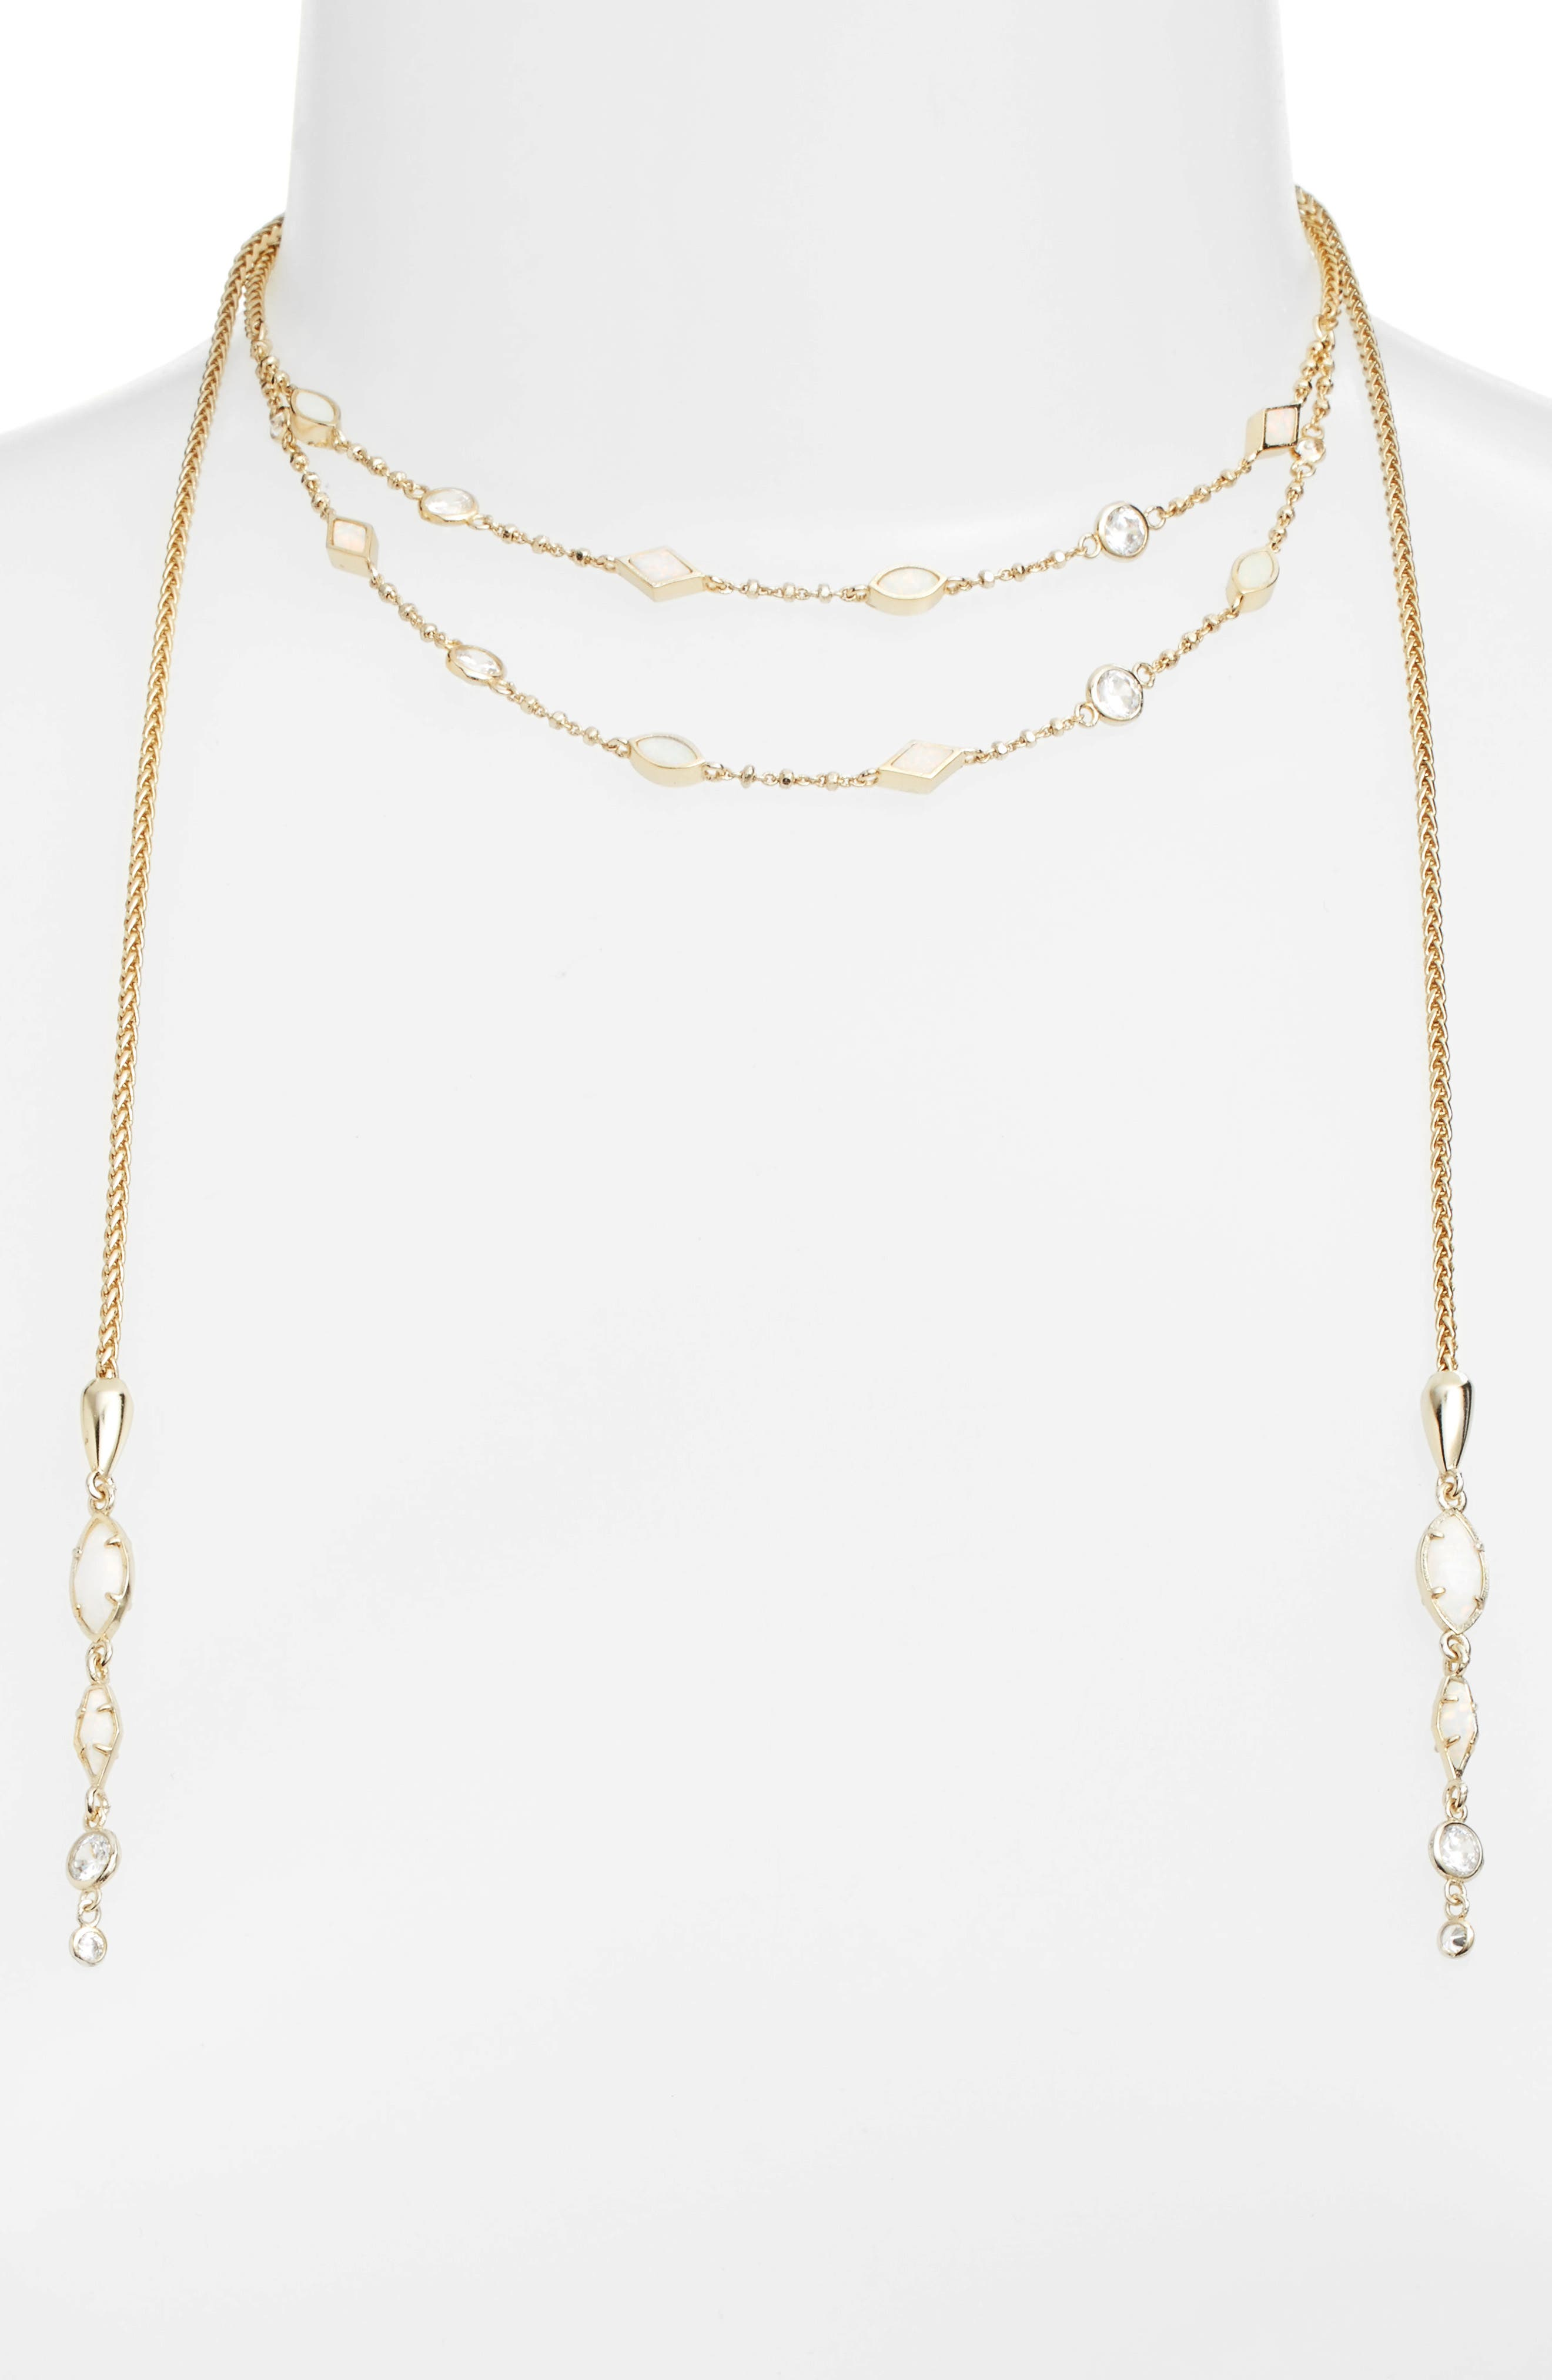 Kendra Scott Emelina Wrap Necklace